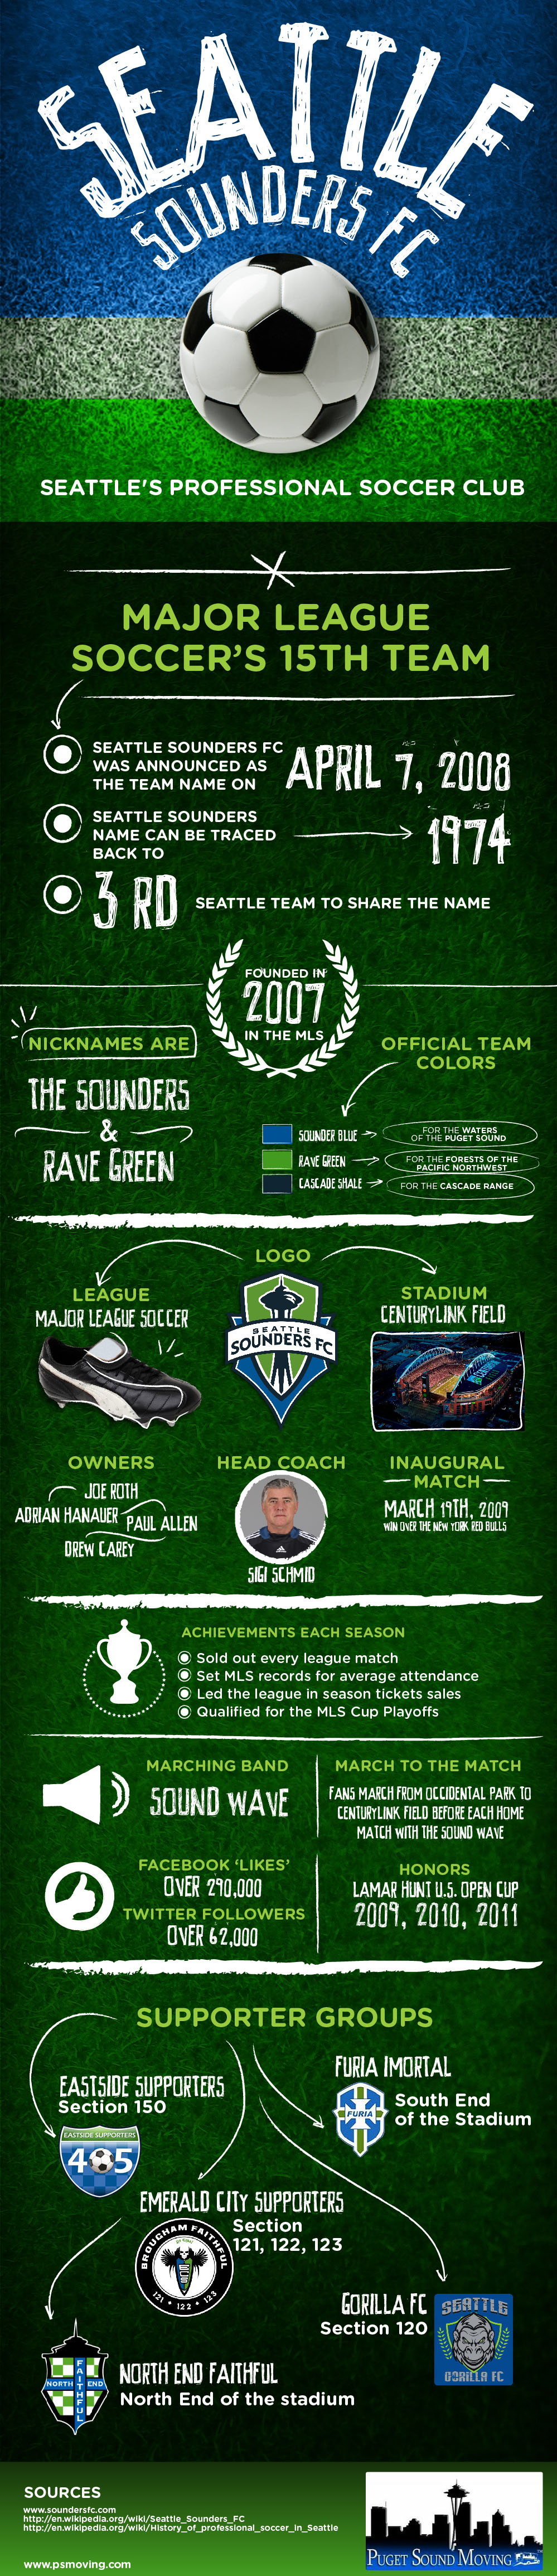 Seattle Sounders Infographic